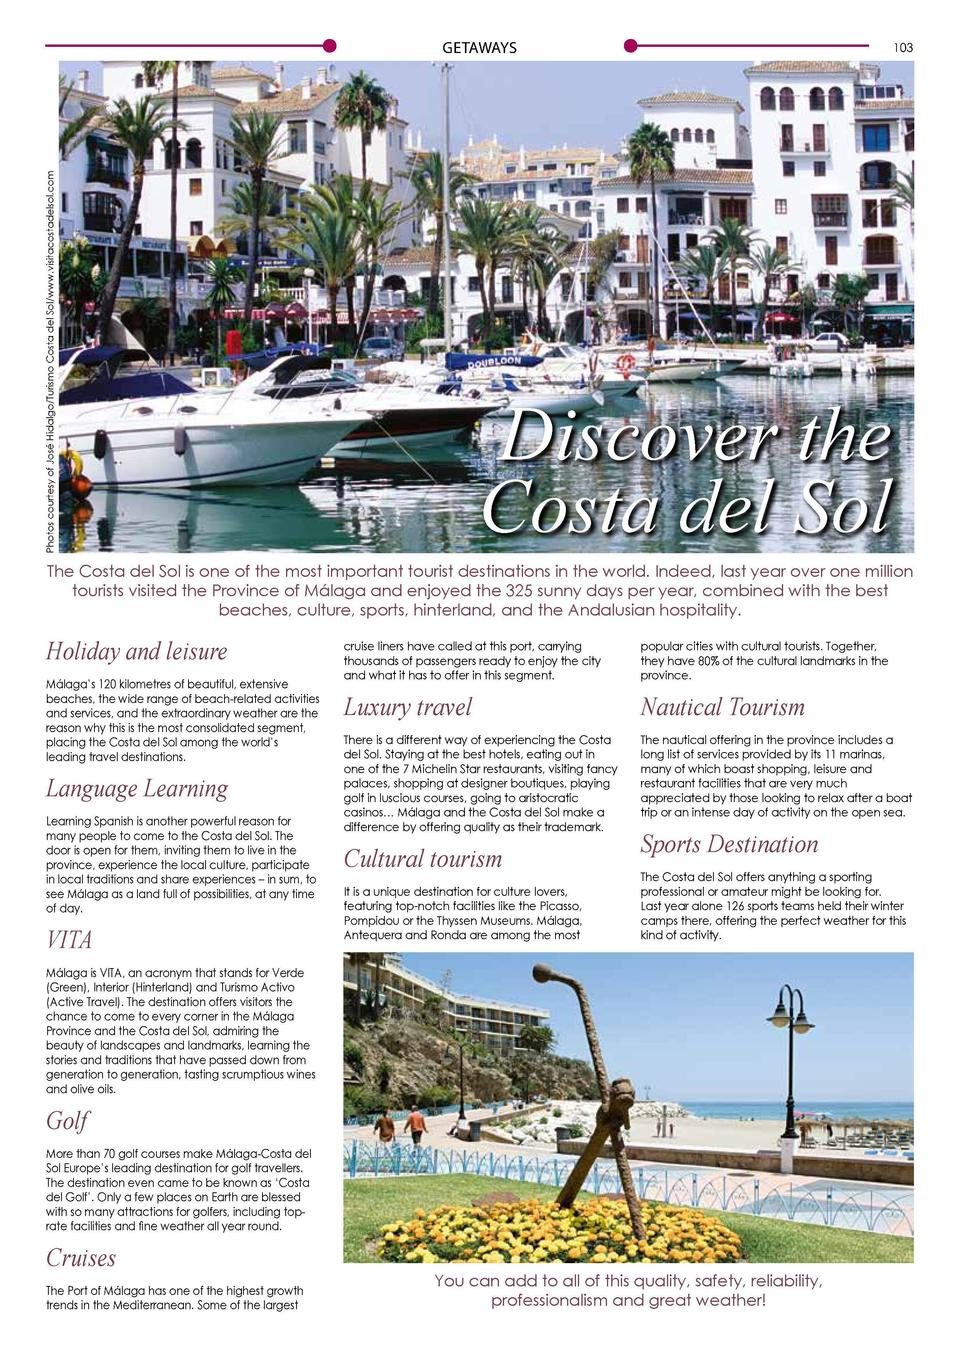 Photos courtesy of Jos   Hidalgo Turismo Costa del Sol www.visitacostadelsol.com  GETAWAYS  103  Discover the Costa del So...